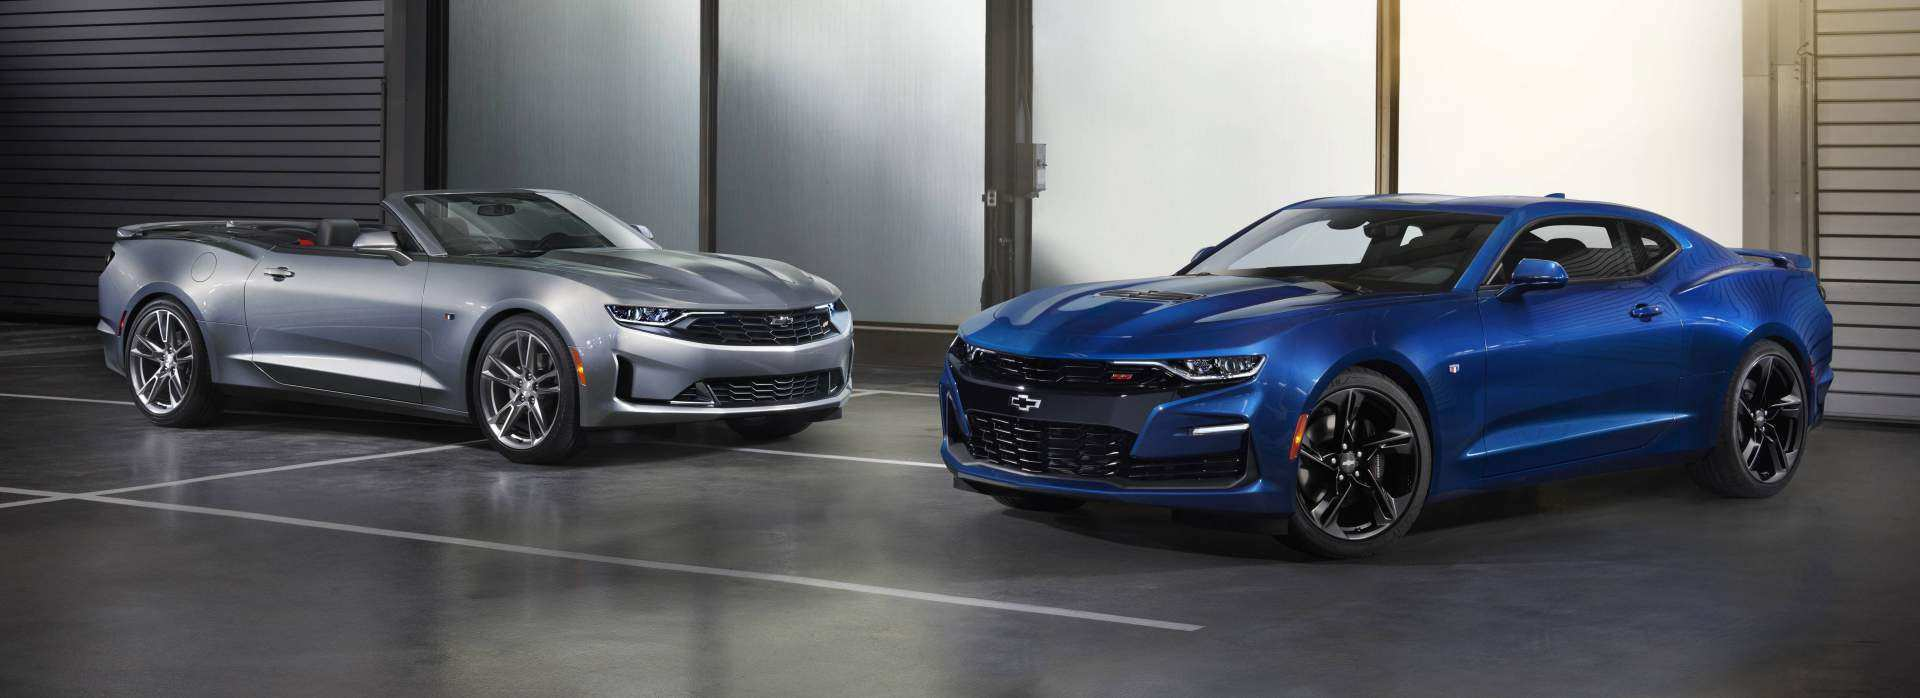 12 Concept of 2020 The All Chevy Camaro Review with 2020 The All Chevy Camaro